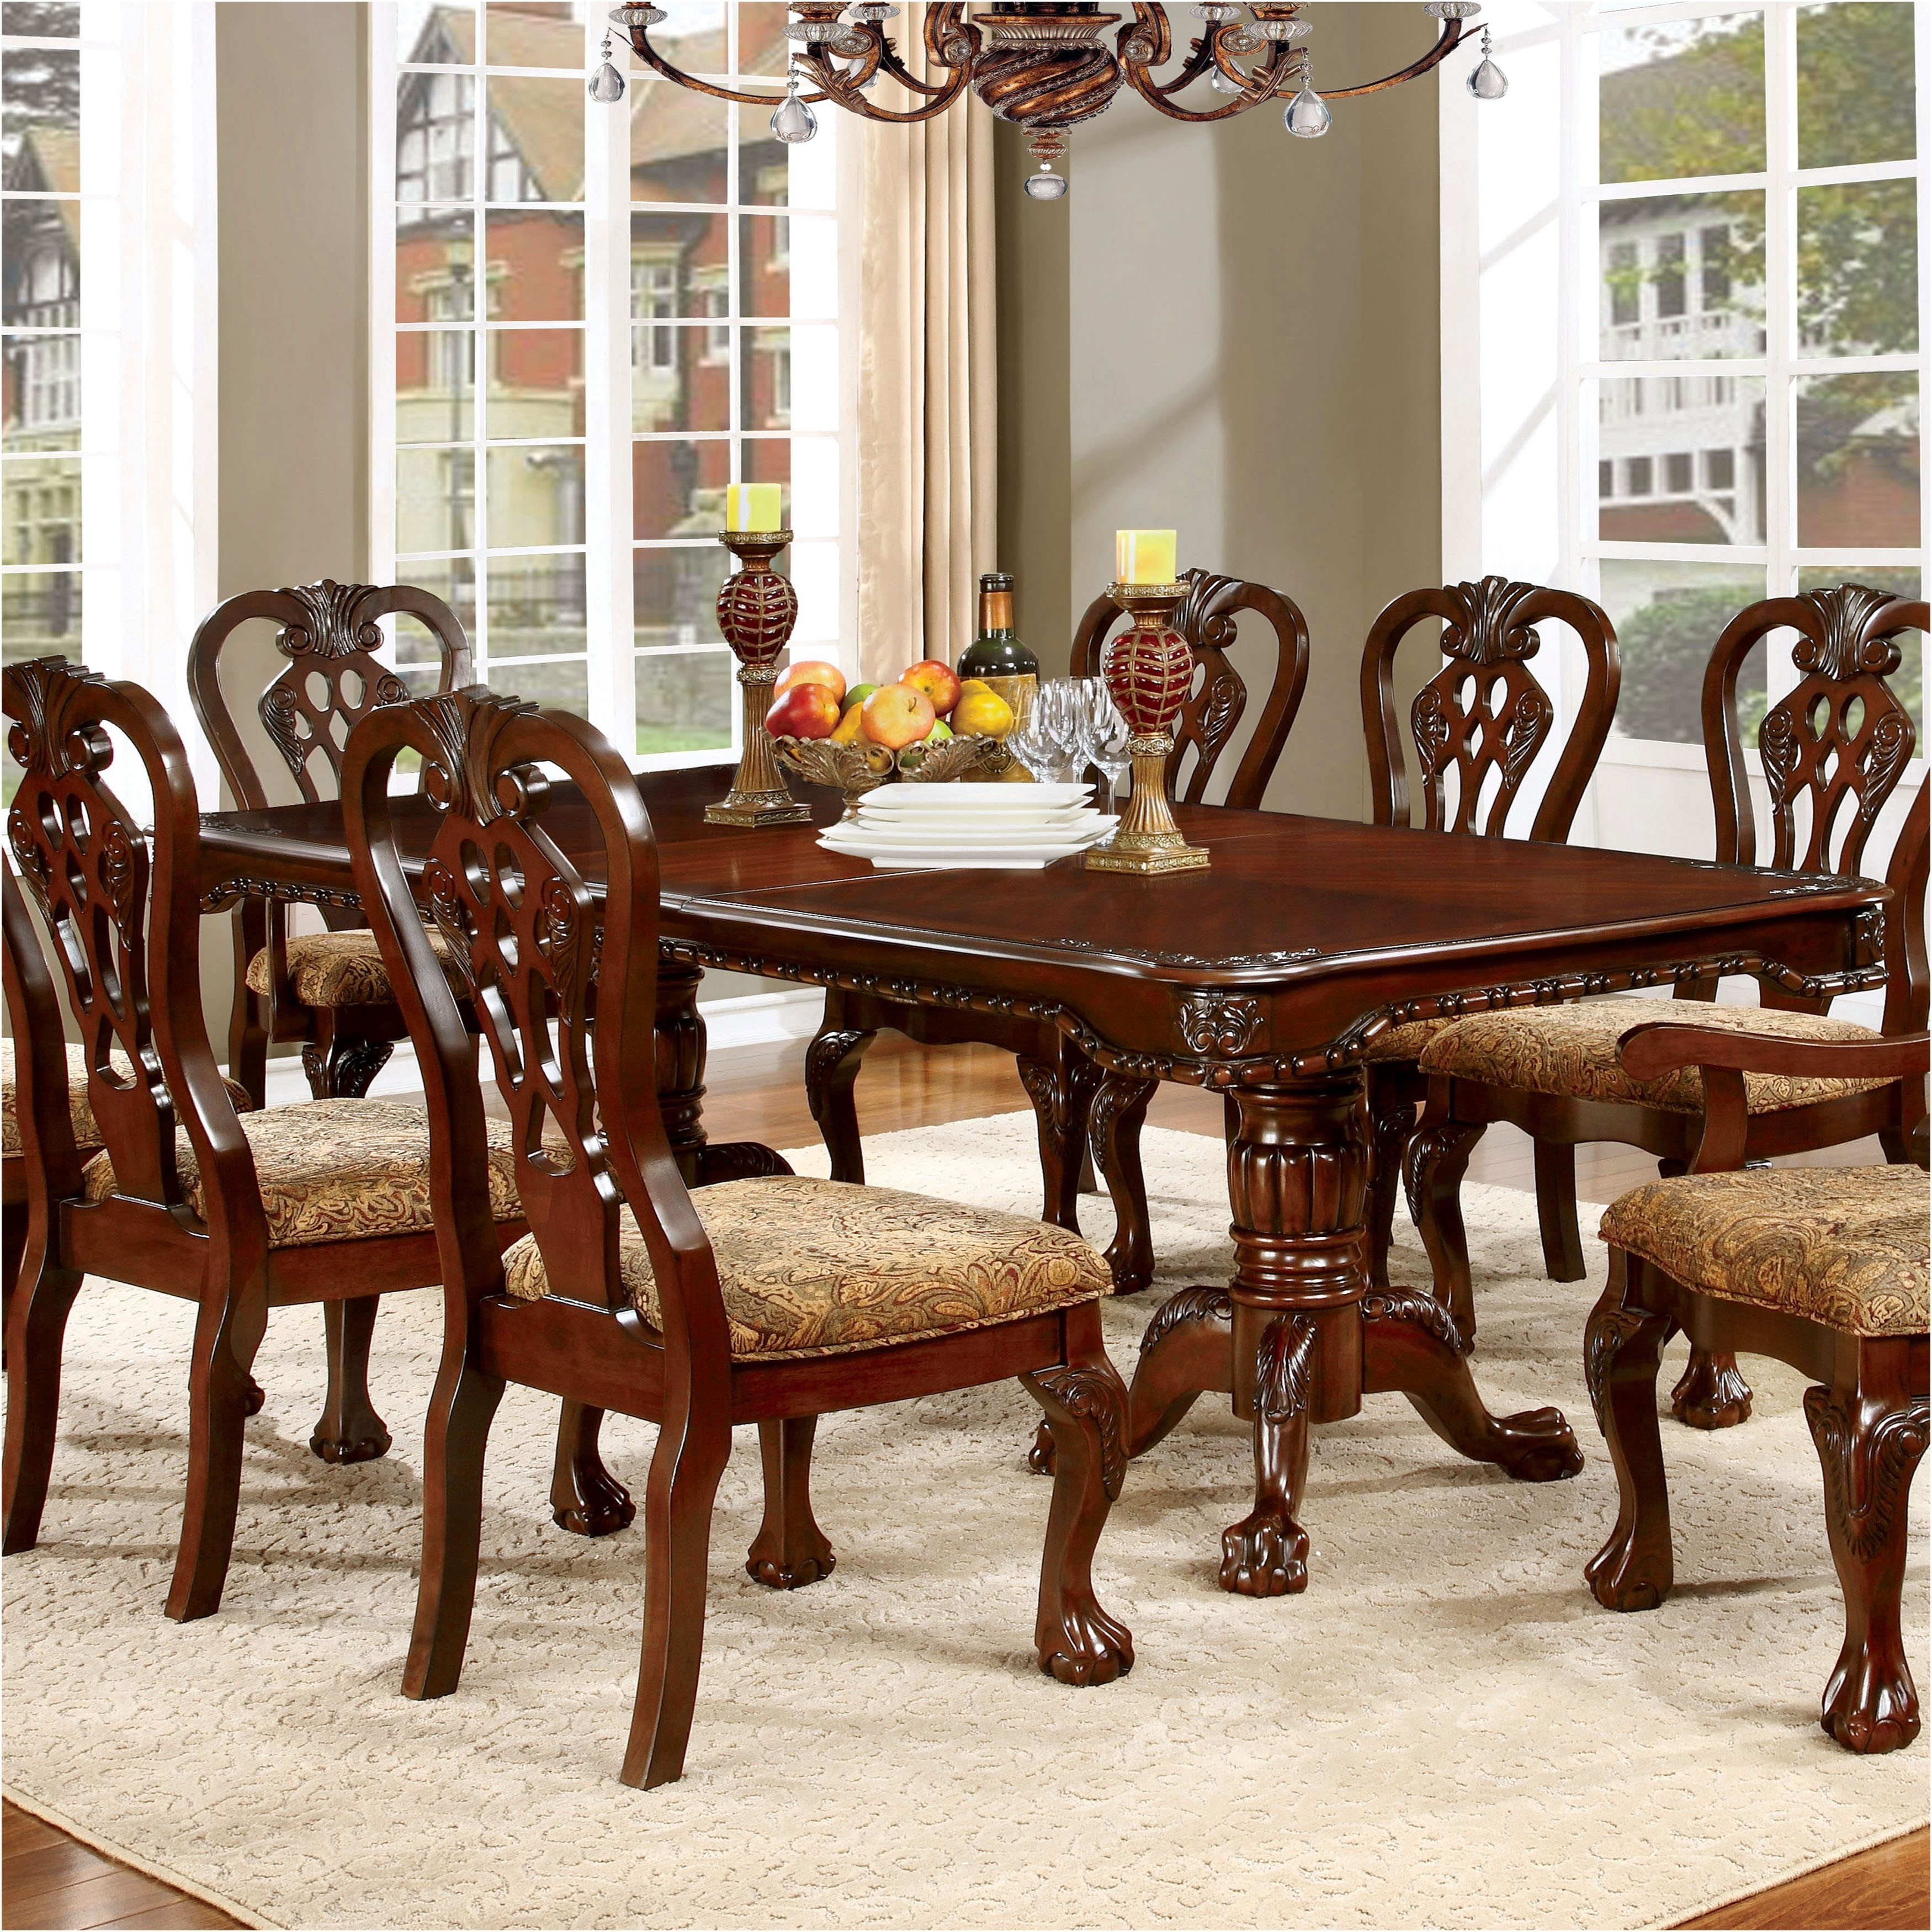 Dining Table Sears Round Dining Table Sets Room Mission Kitchen ...